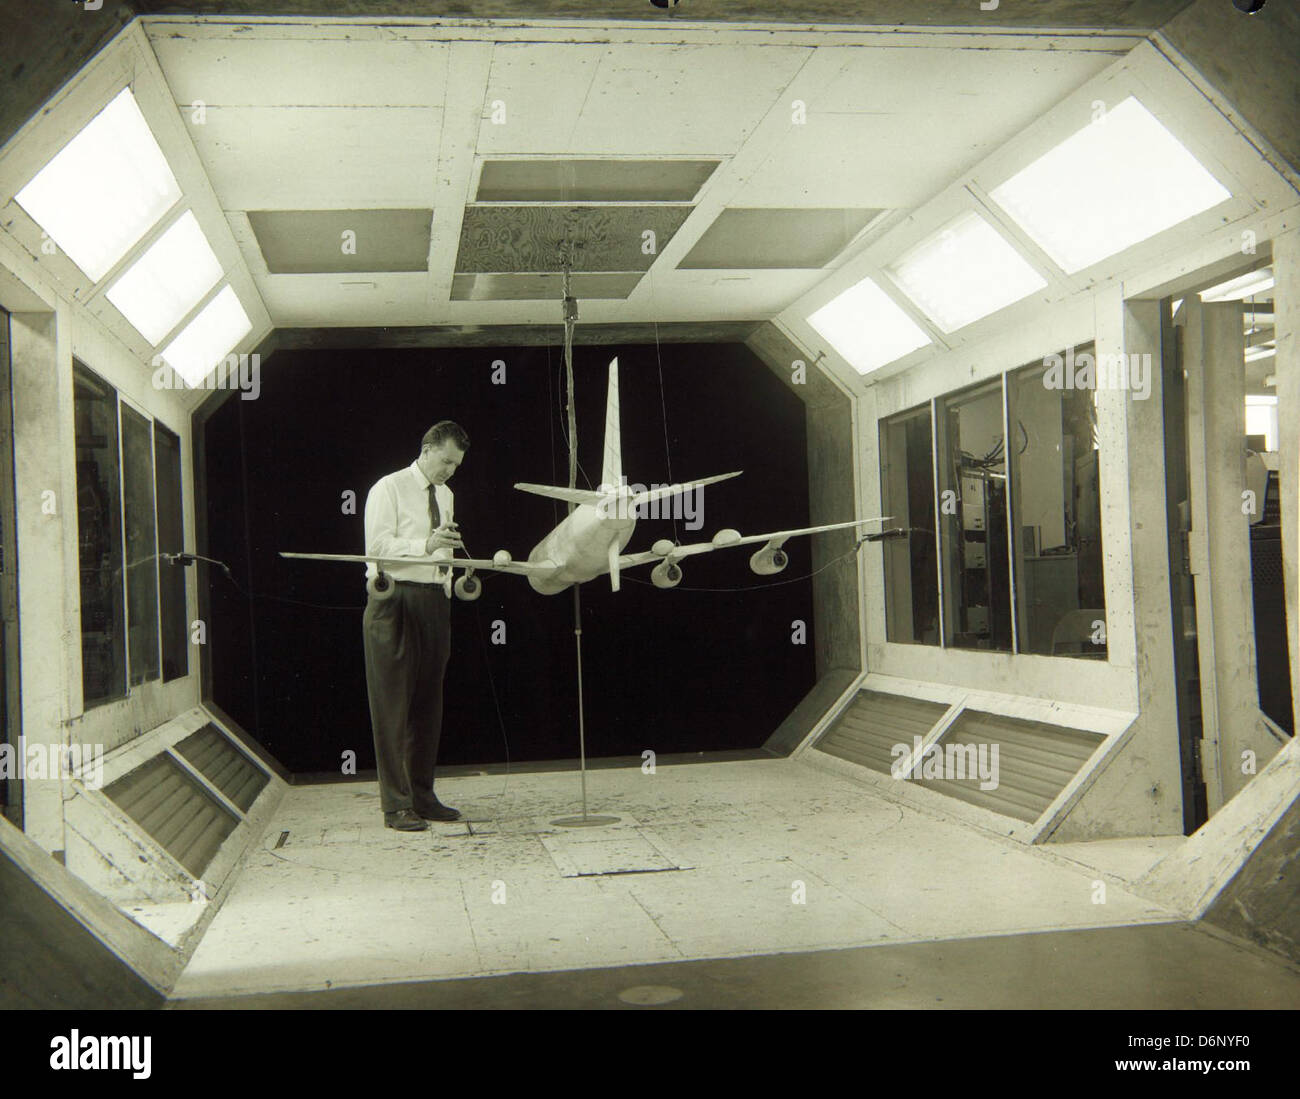 Convair/General Dynamics Wind Tunnel - Stock Image